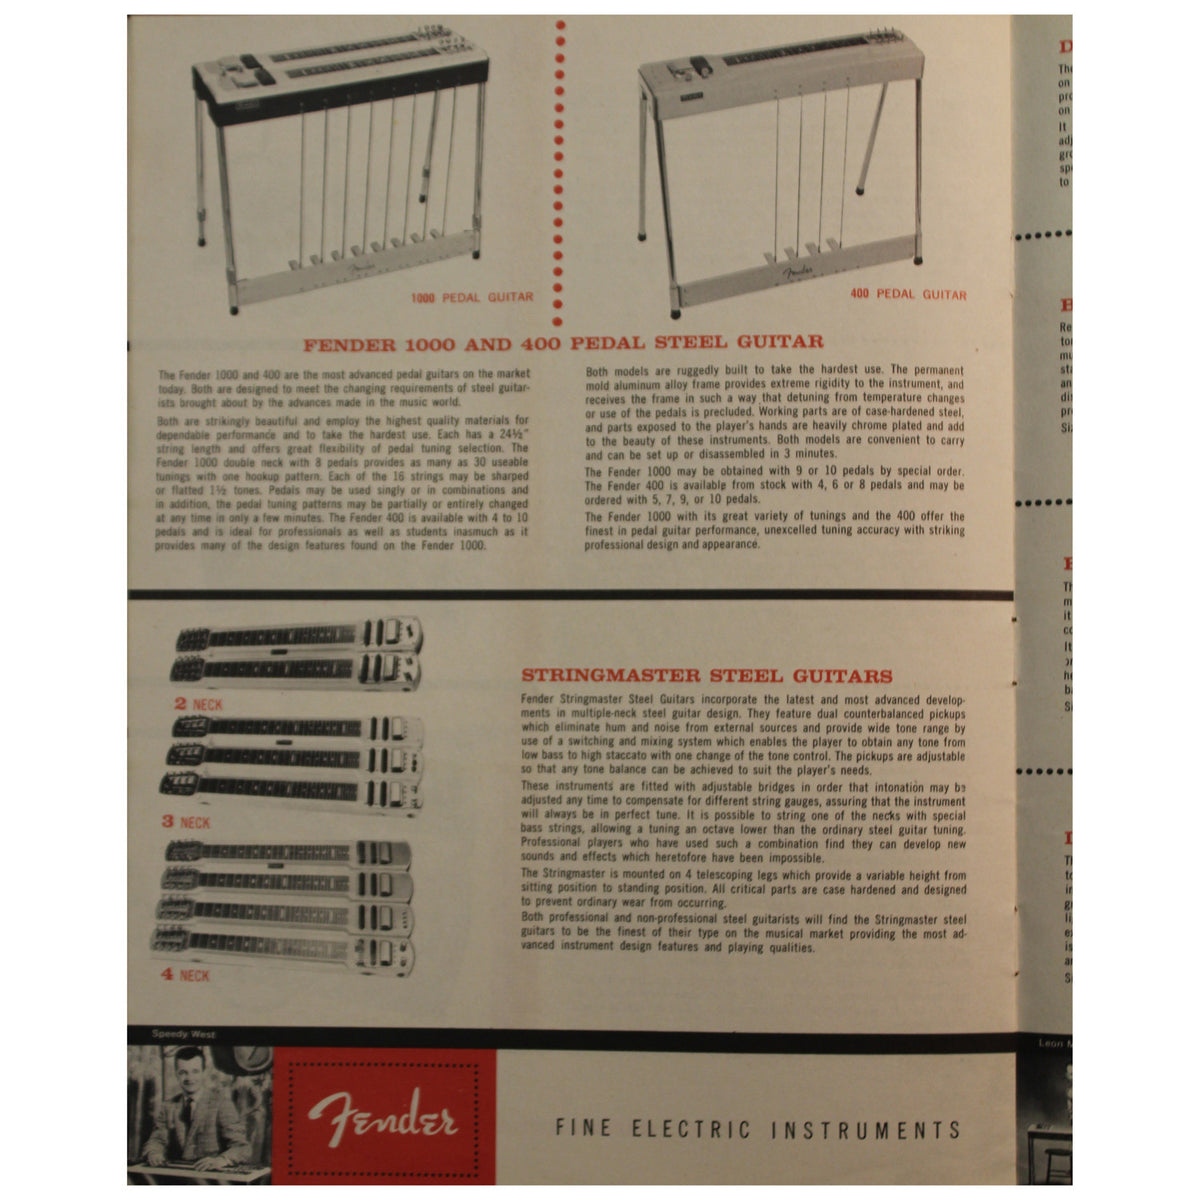 Fender Catalog Collection (1955-1966) - Garrett Park Guitars  - 38